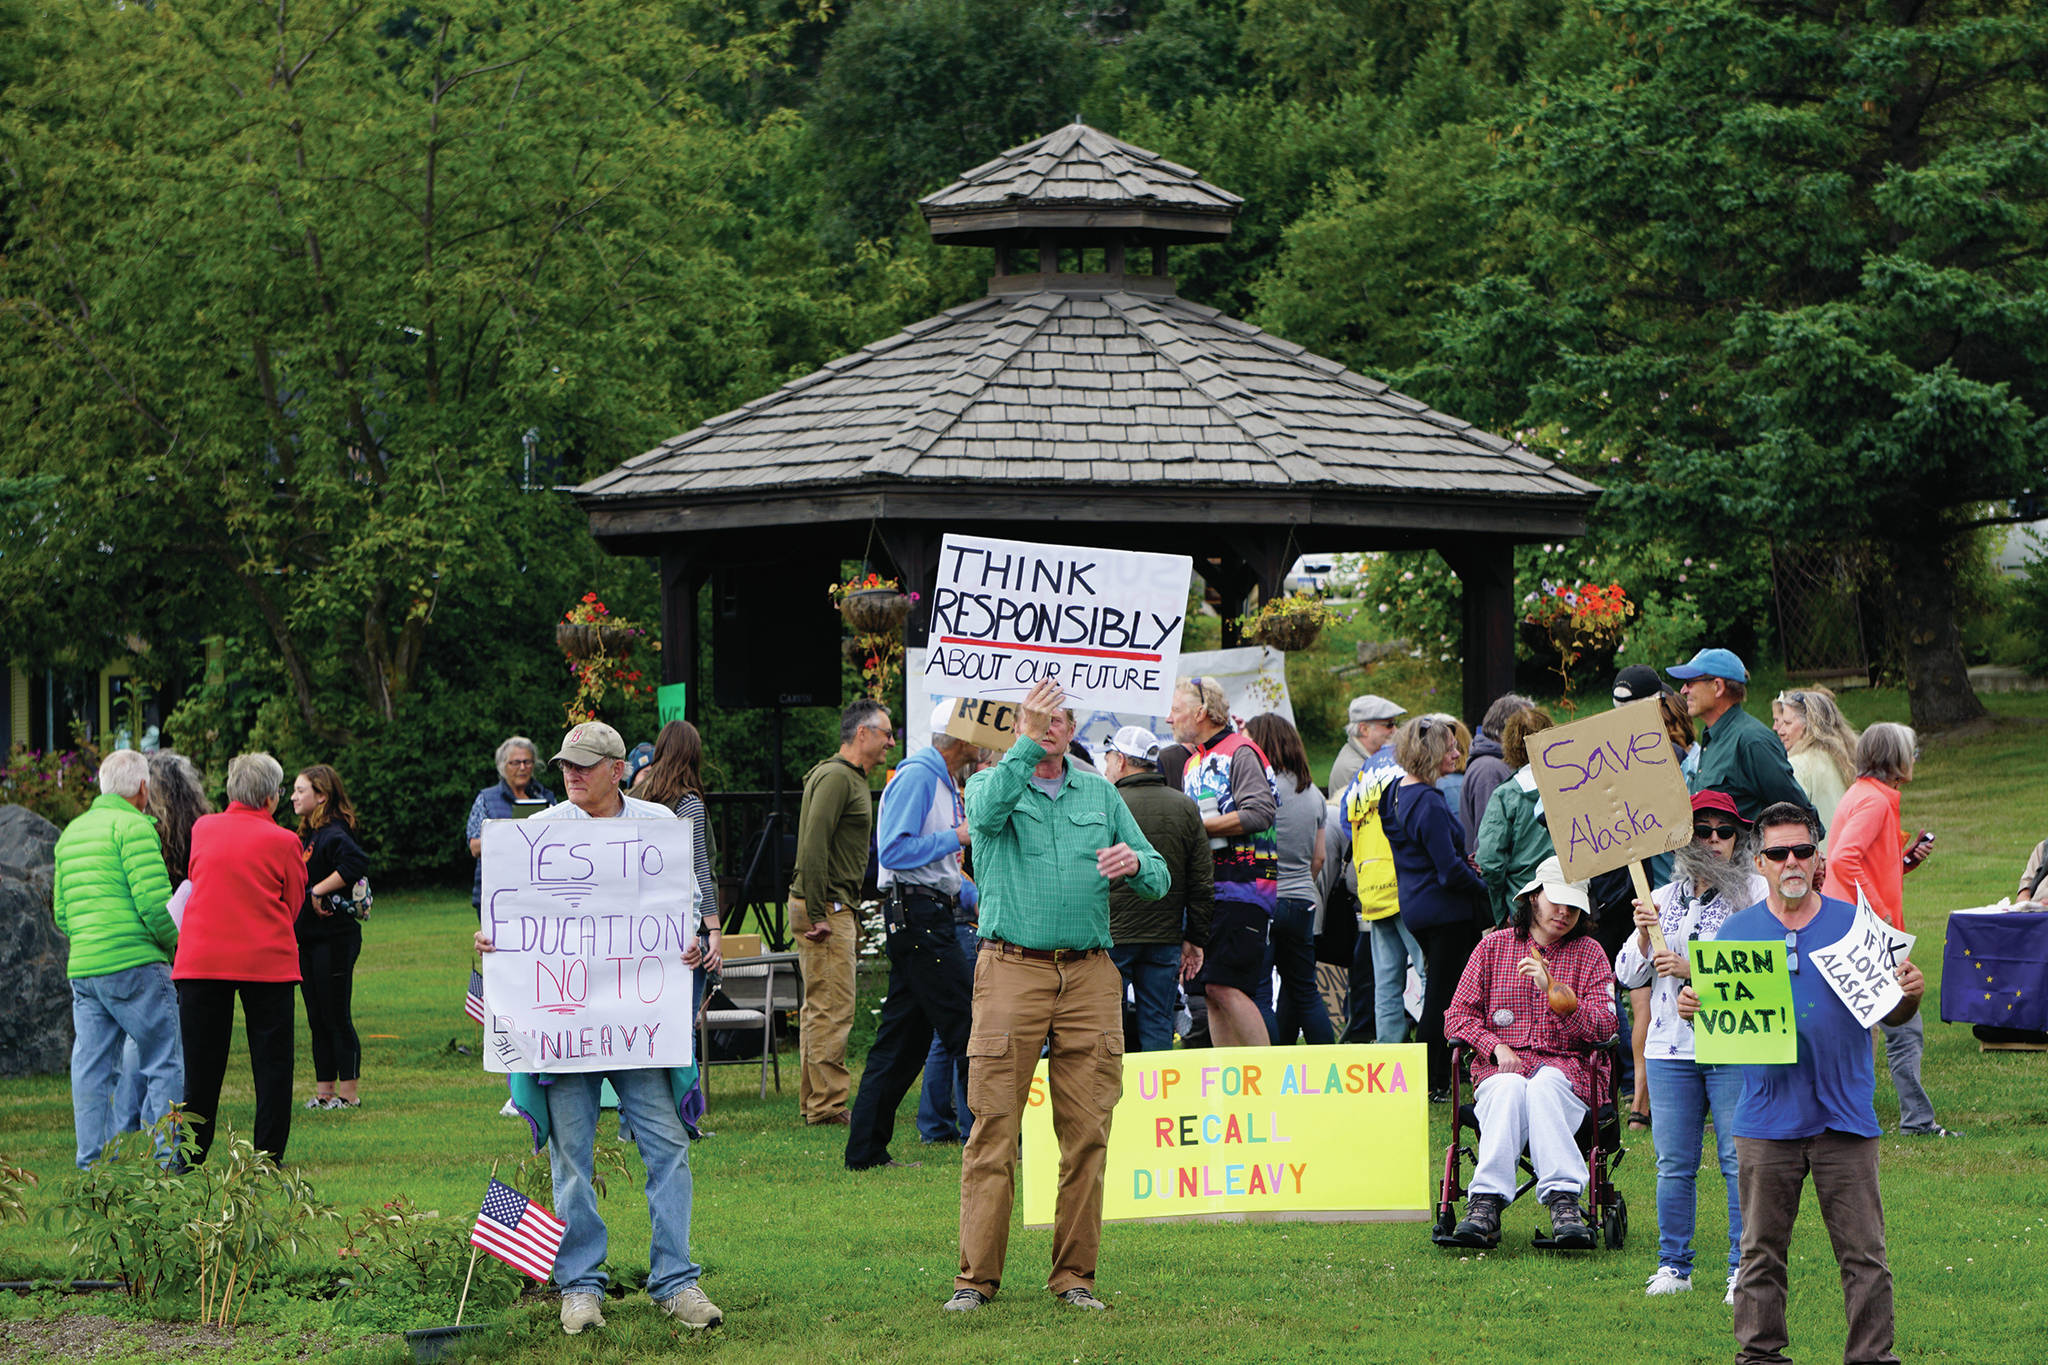 Recall Dunleavy supporters hold signs at a Recall Dunleavy rally held on Aug. 1, 2019, at WKFL Park in Homer, Alaska. (Photo by Michael Armstrong)